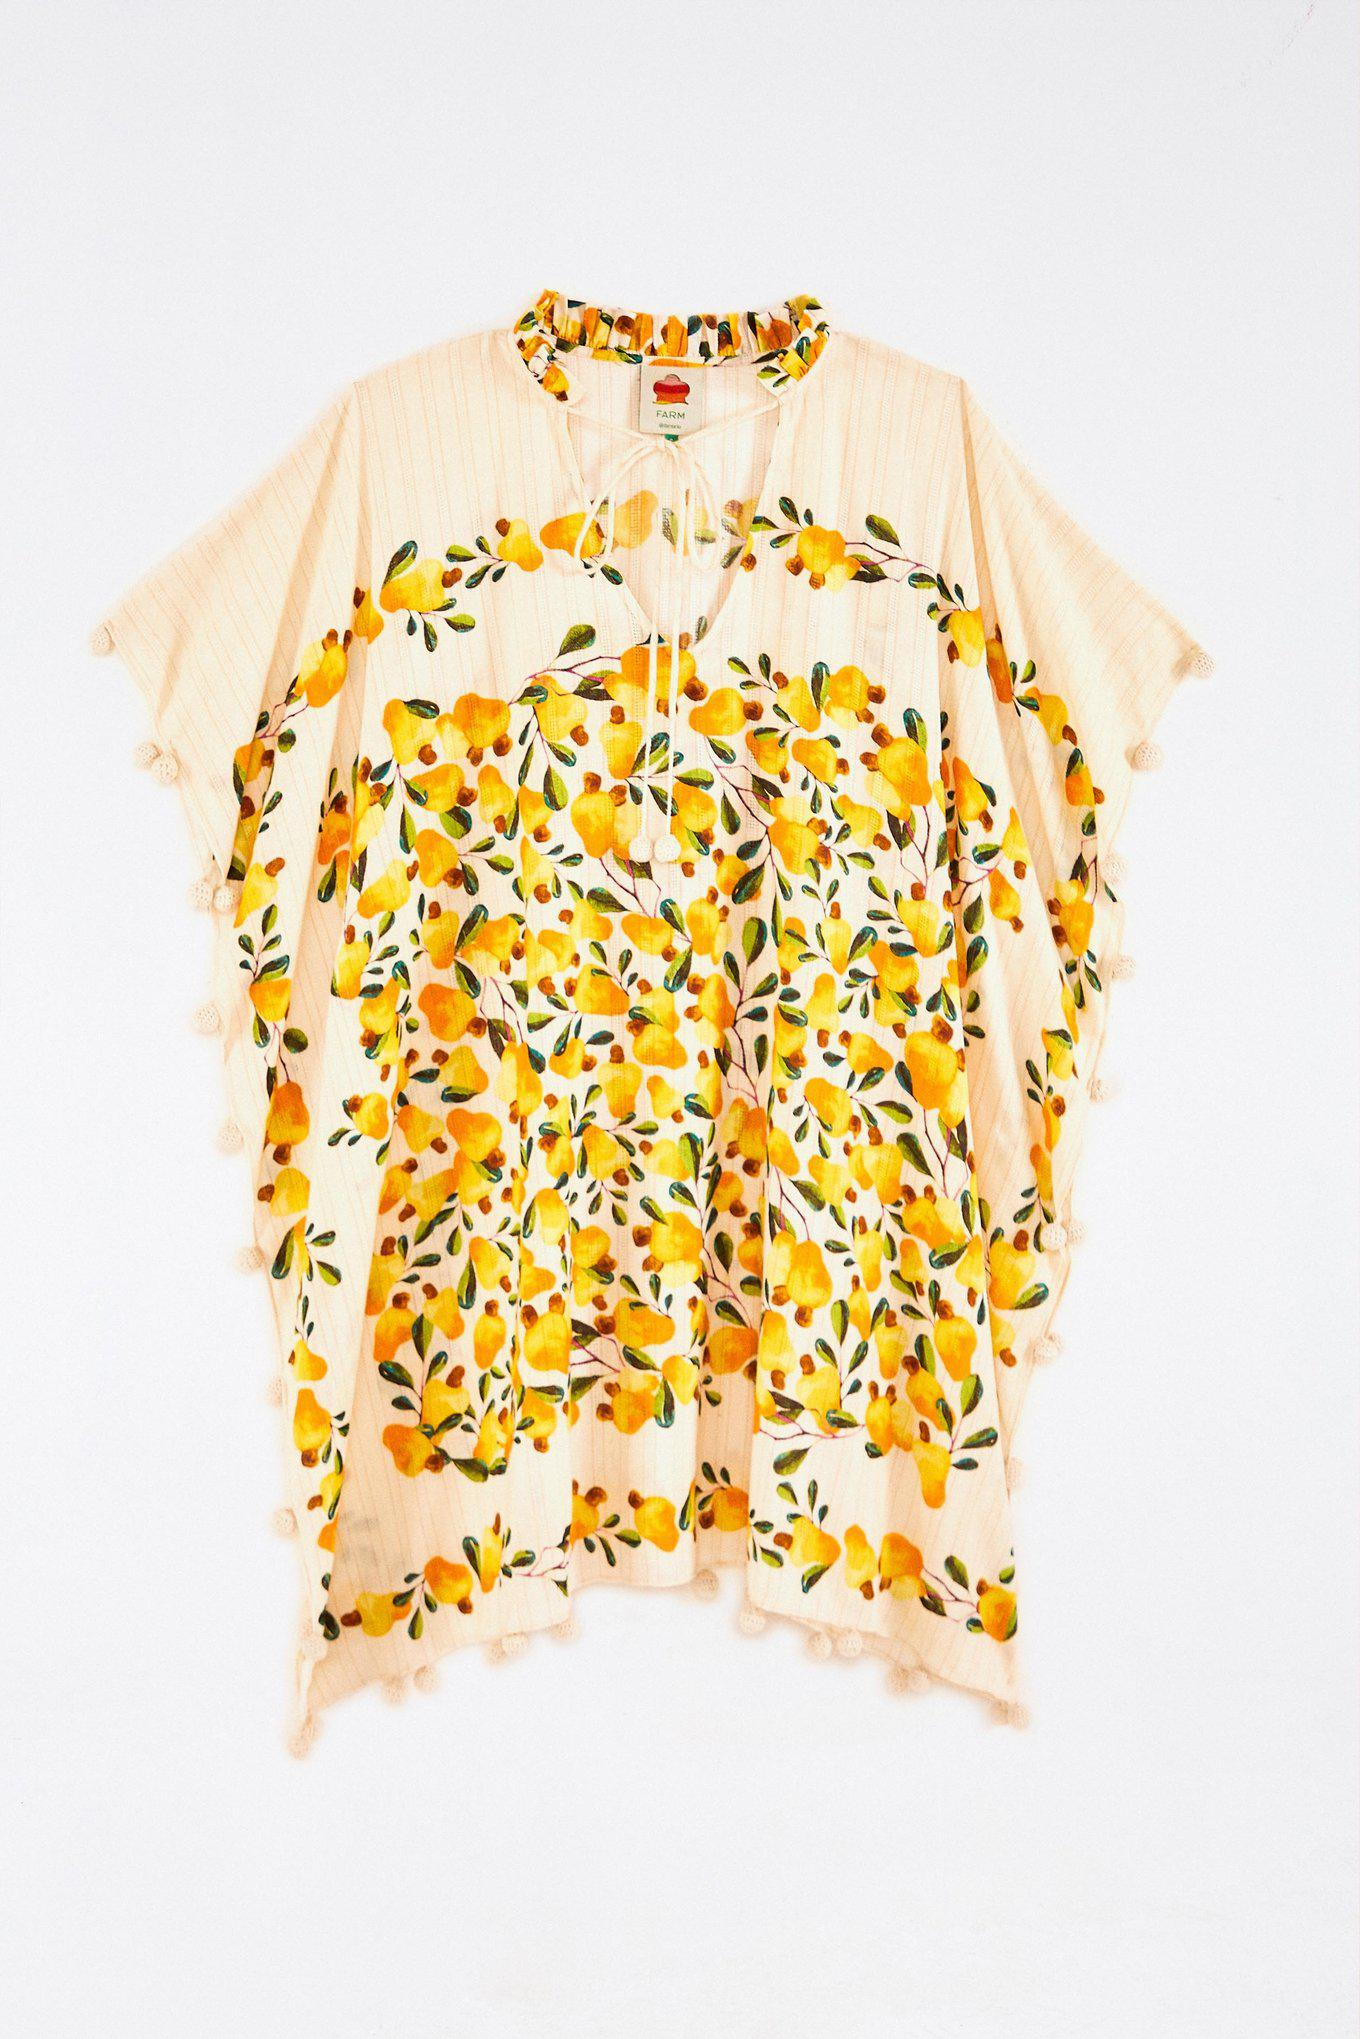 OFF WHITE CASHEW SCARF COVER UP